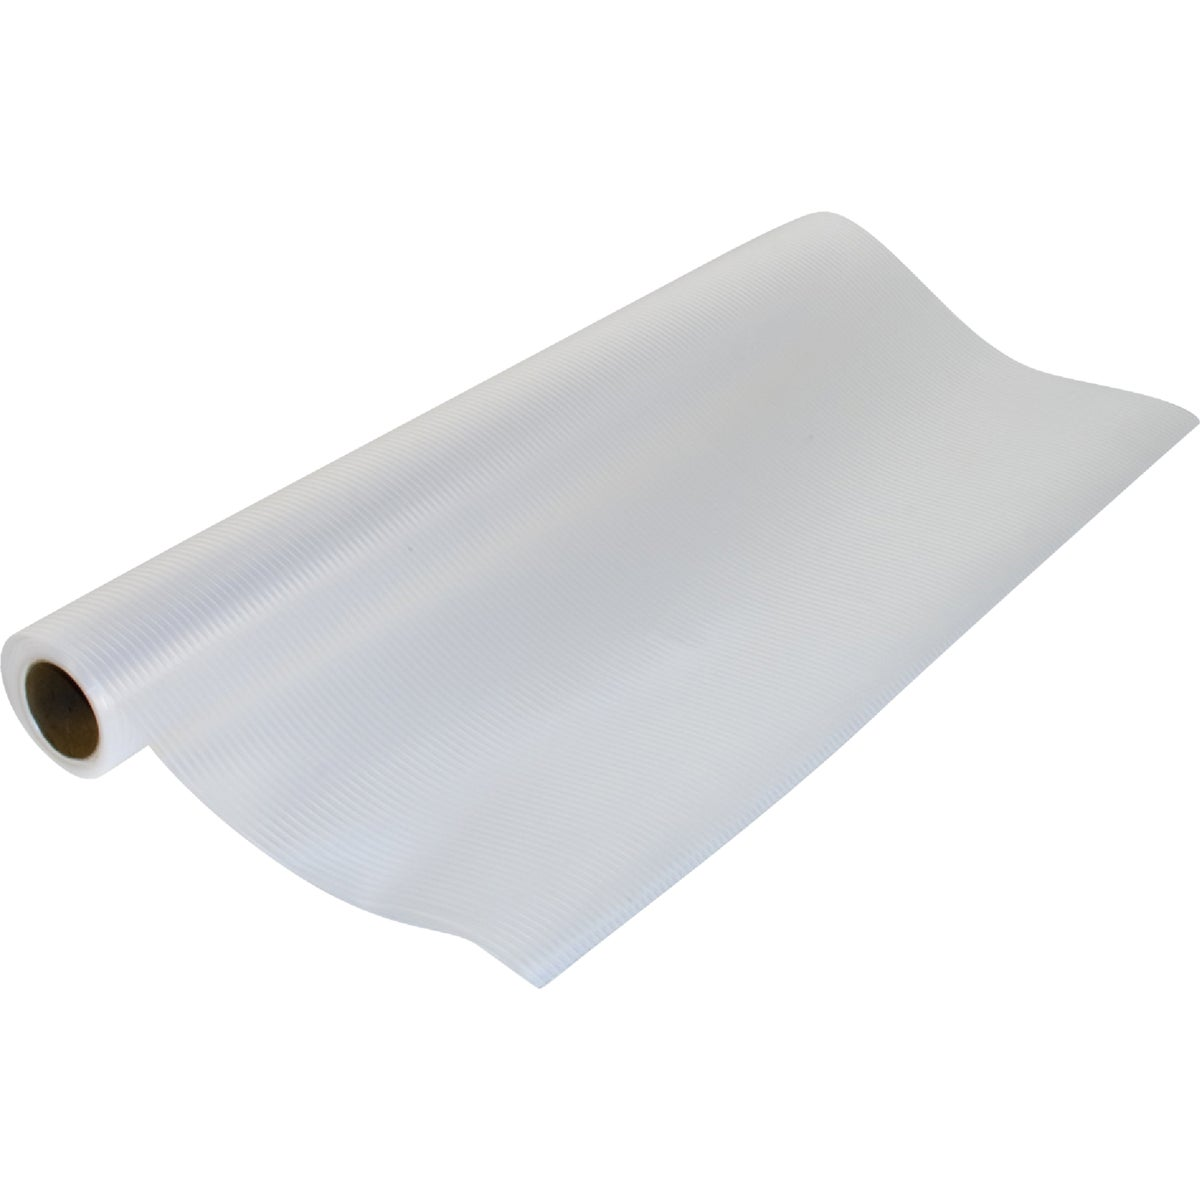 """18""""X4' CLEAR RIBED LINER - 04F-C8P01-01 by Kittrich Corp"""